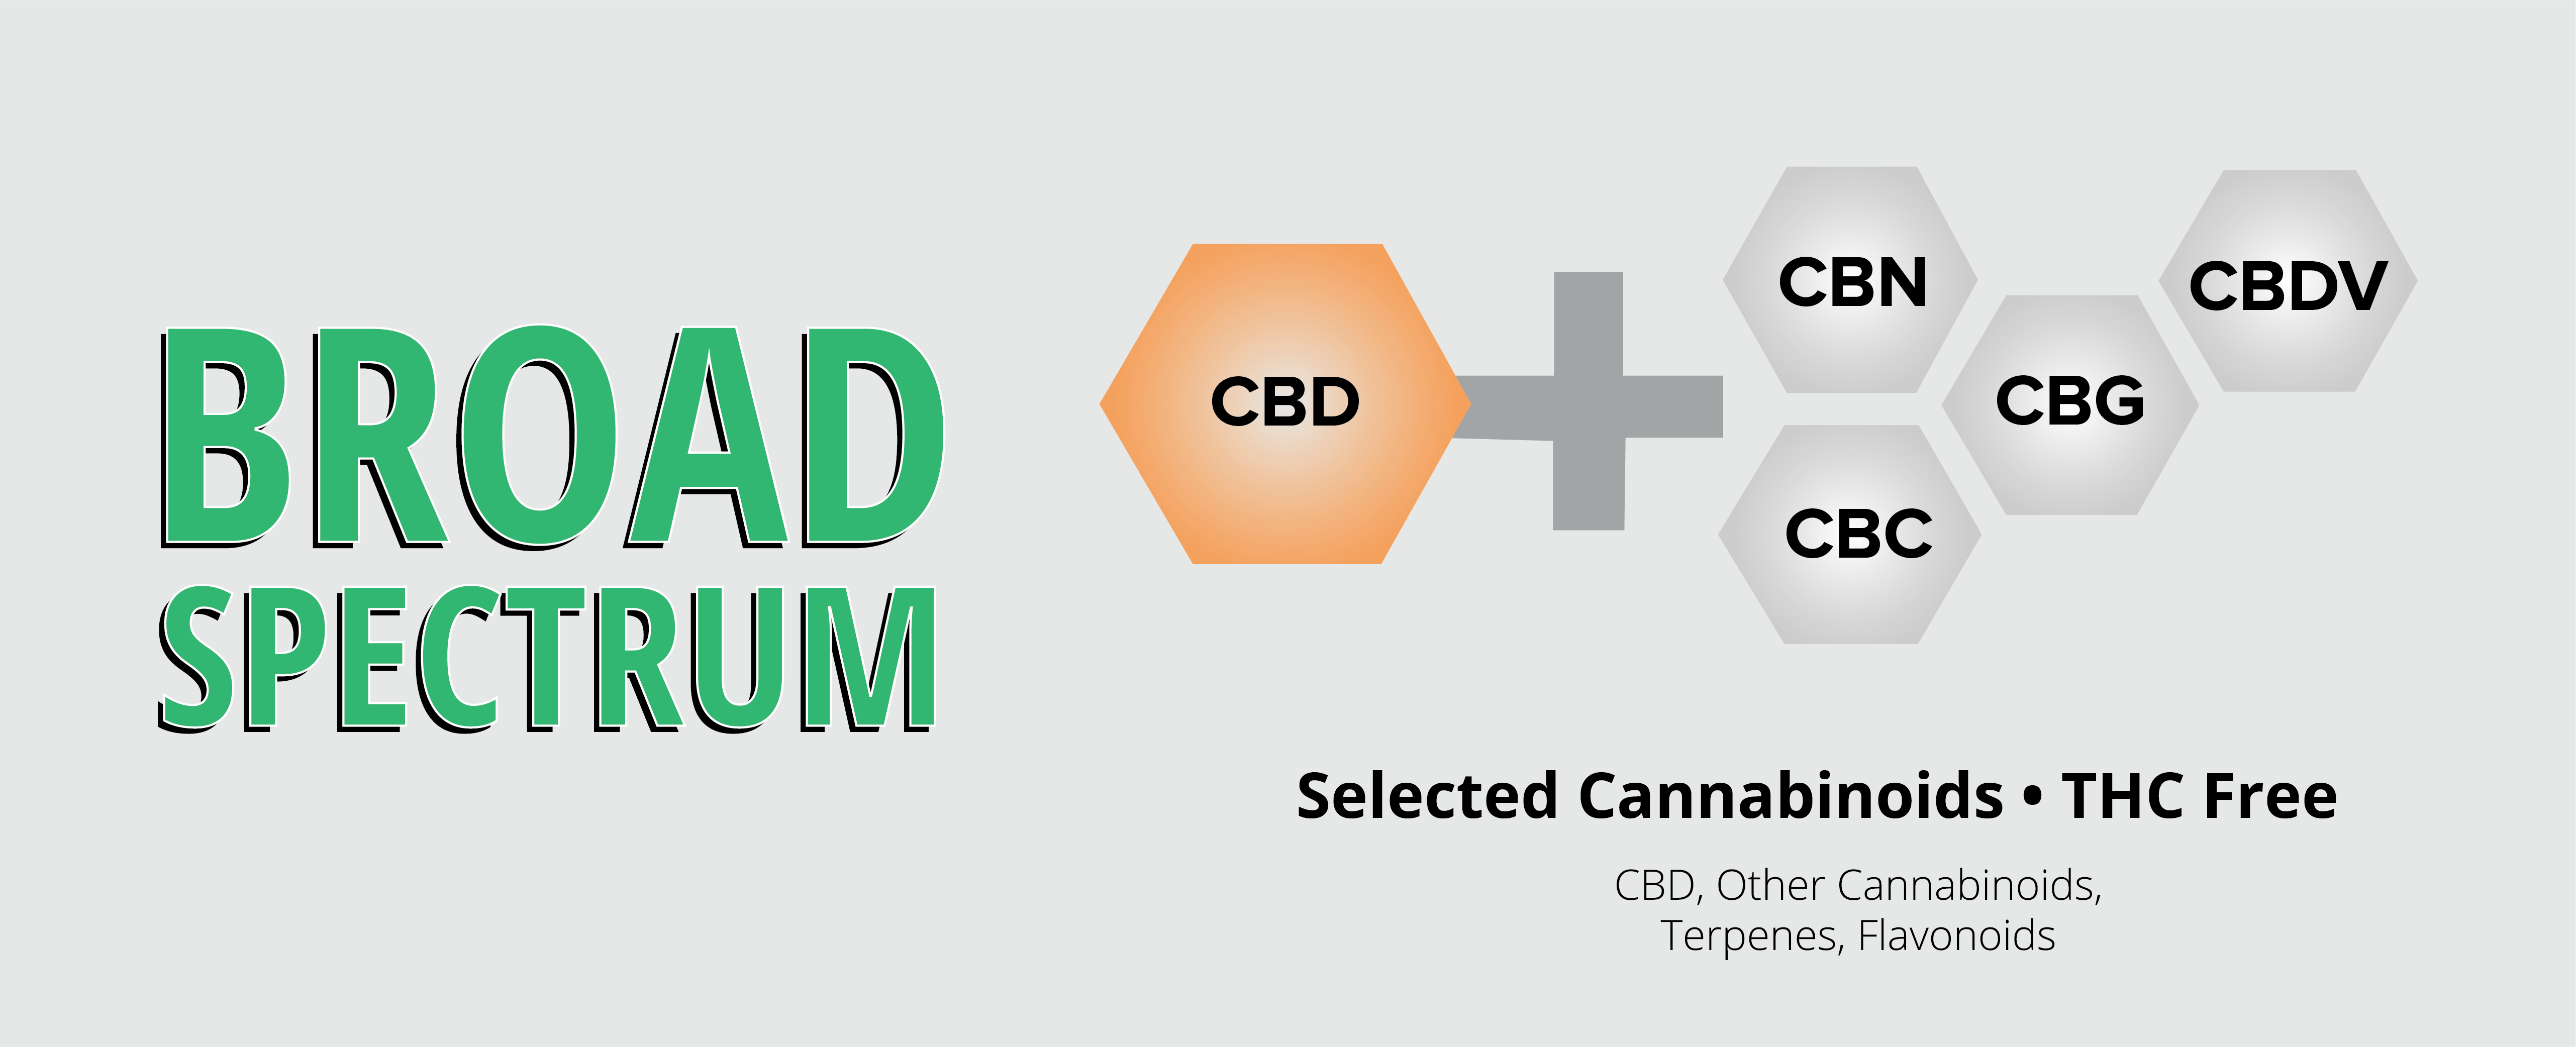 Broad Spectrum Informational Chart with Cannabinoids